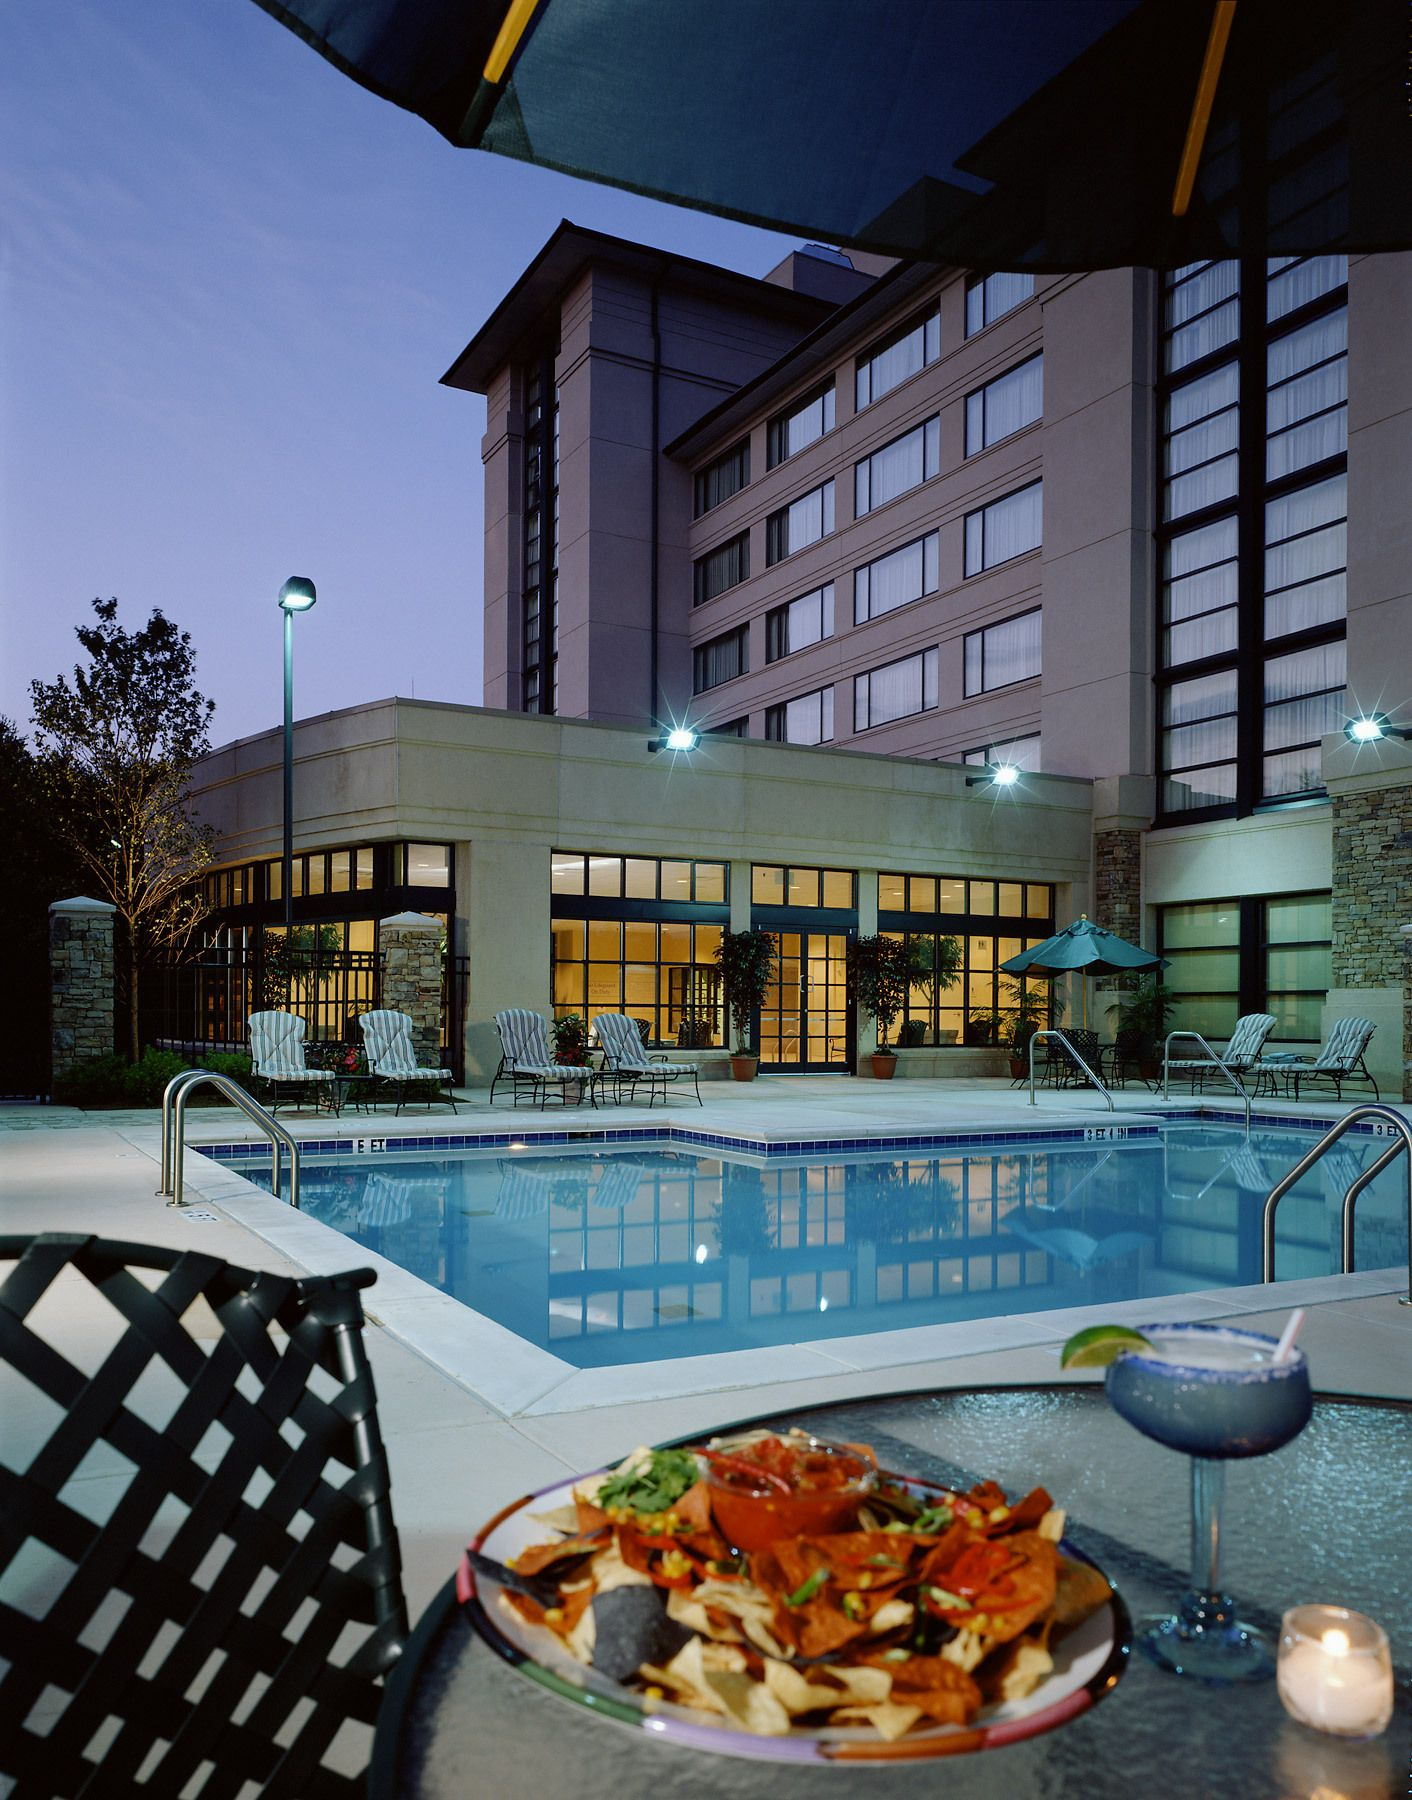 1alpharetta_marriott_pool.jpg